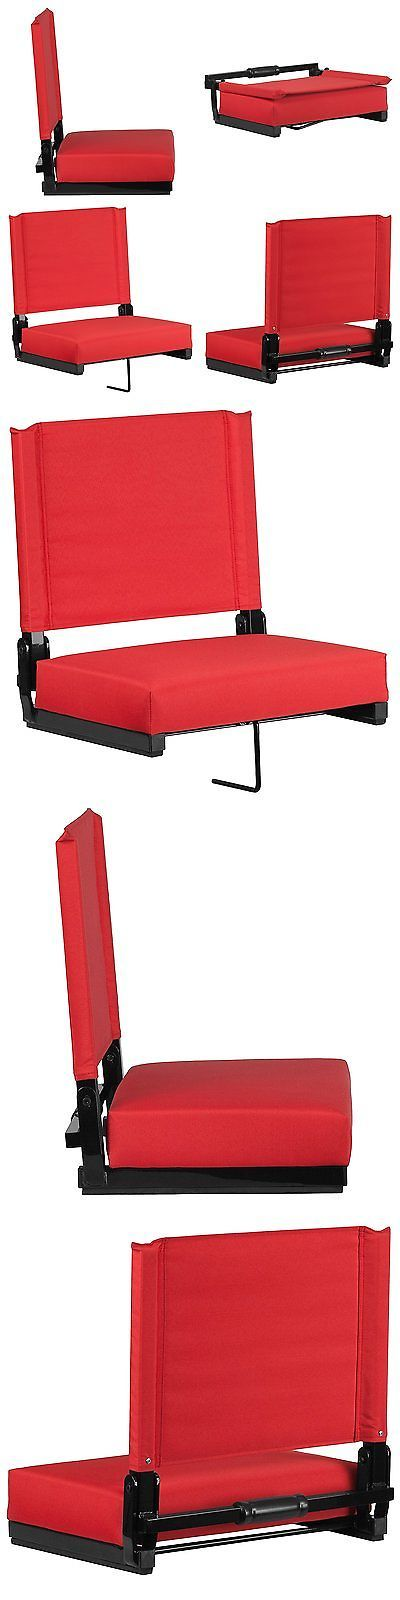 Other Outdoor Sports 159048: Bleacher Seats With Backs Red Stadium Chair Cushion Comfy Portable New! -> BUY IT NOW ONLY: $68.2 on eBay!